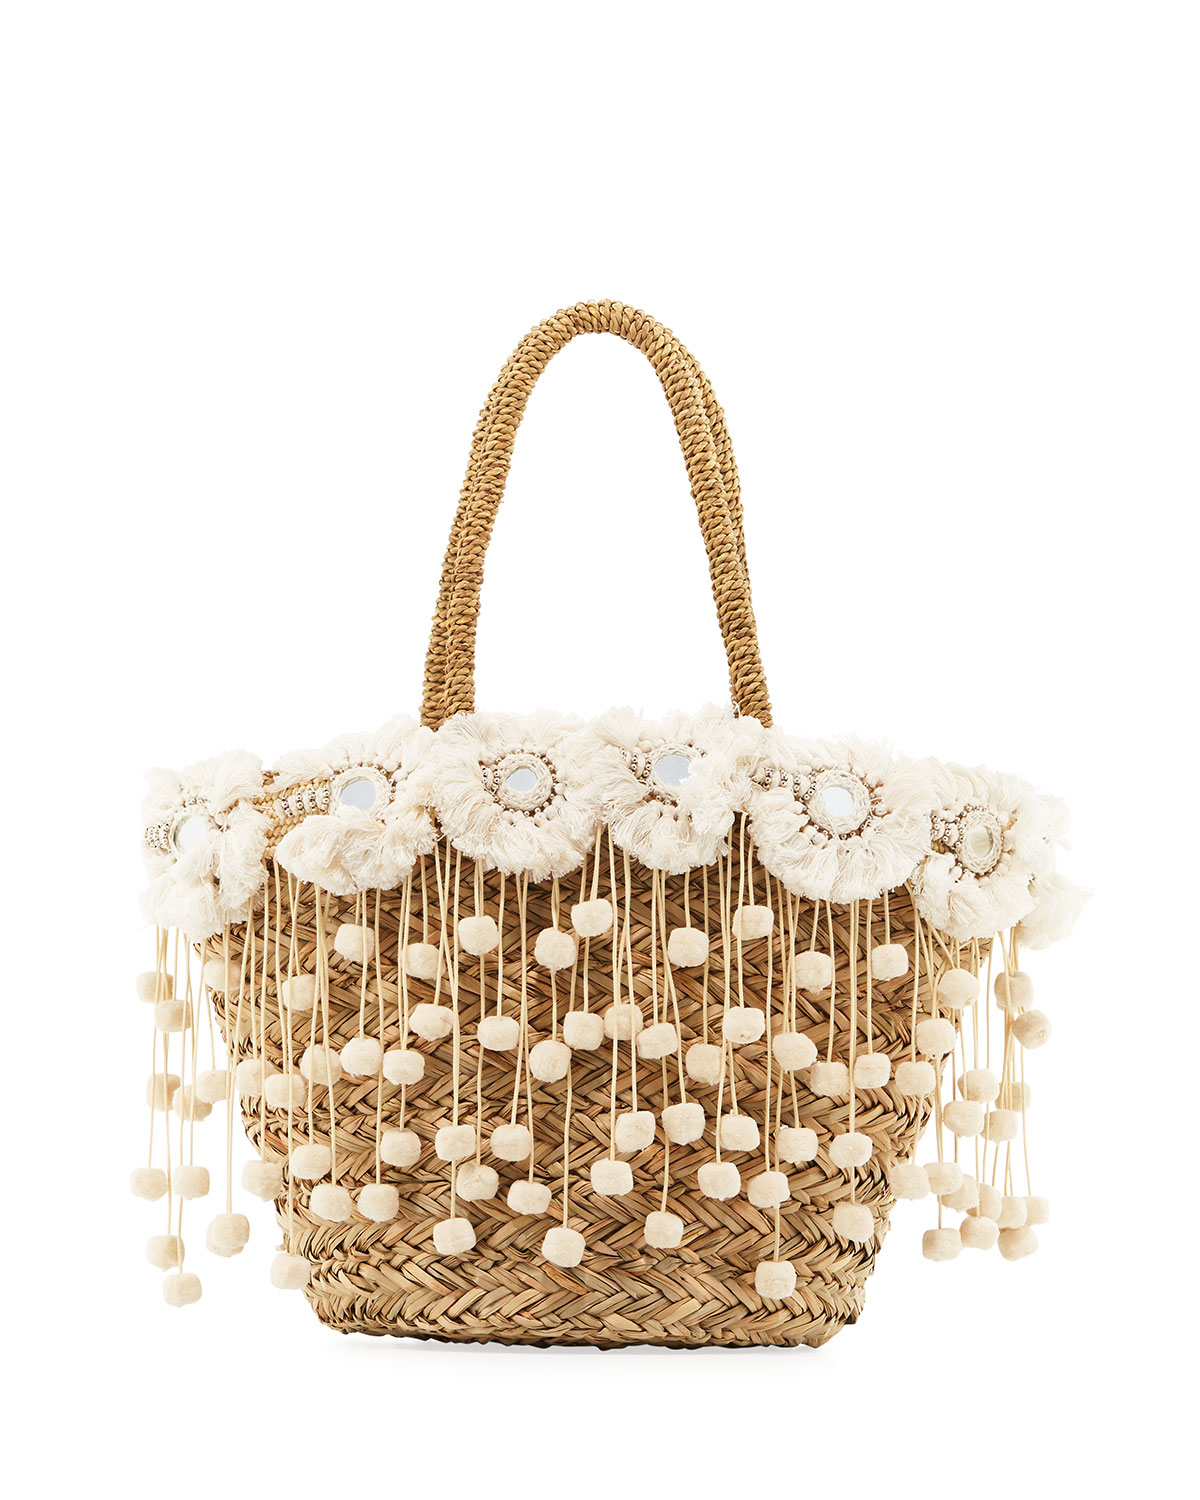 Kailua Straw Beach Tote Bag with Fringe & Pompom Trim